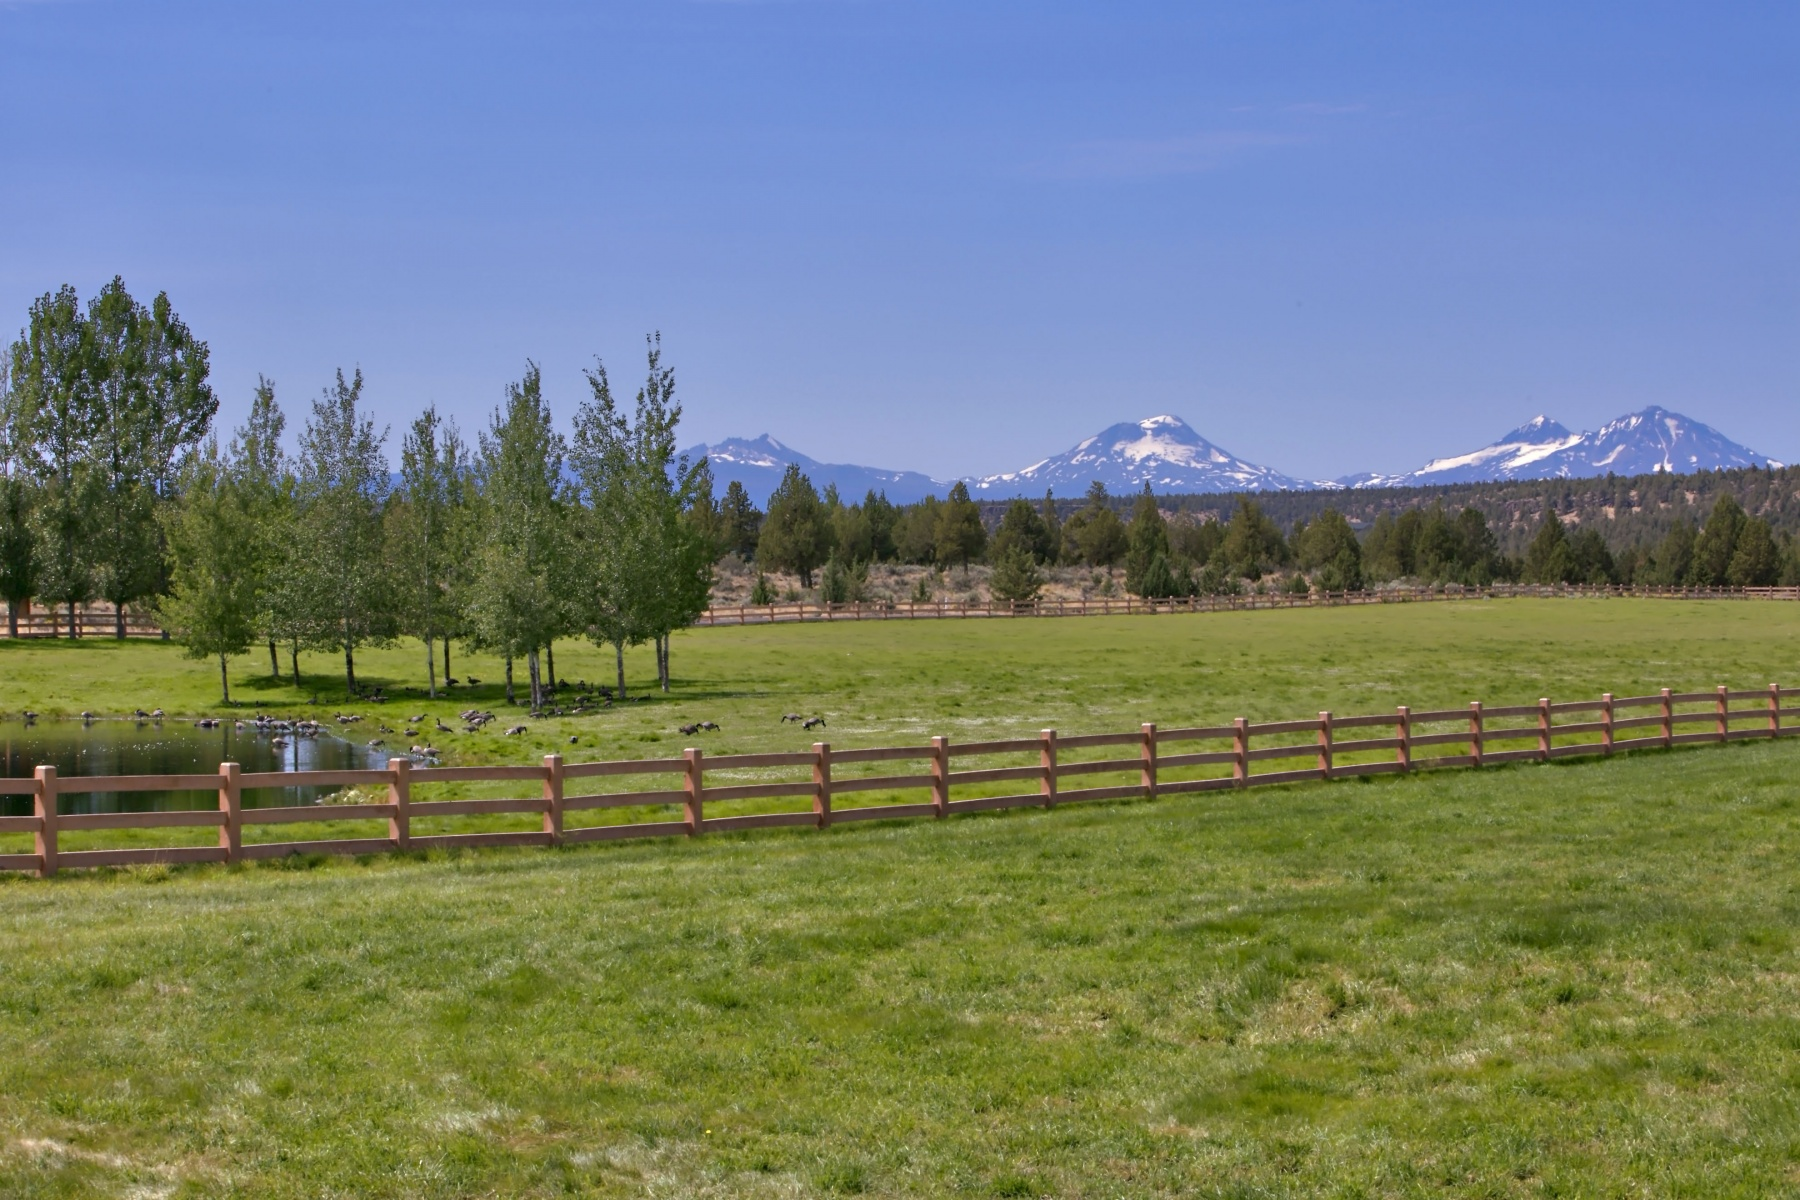 Terreno por un Venta en The Ranch at Odin Falls 7425 NW Grubstake Way Redmond, Oregon, 97756 Estados Unidos